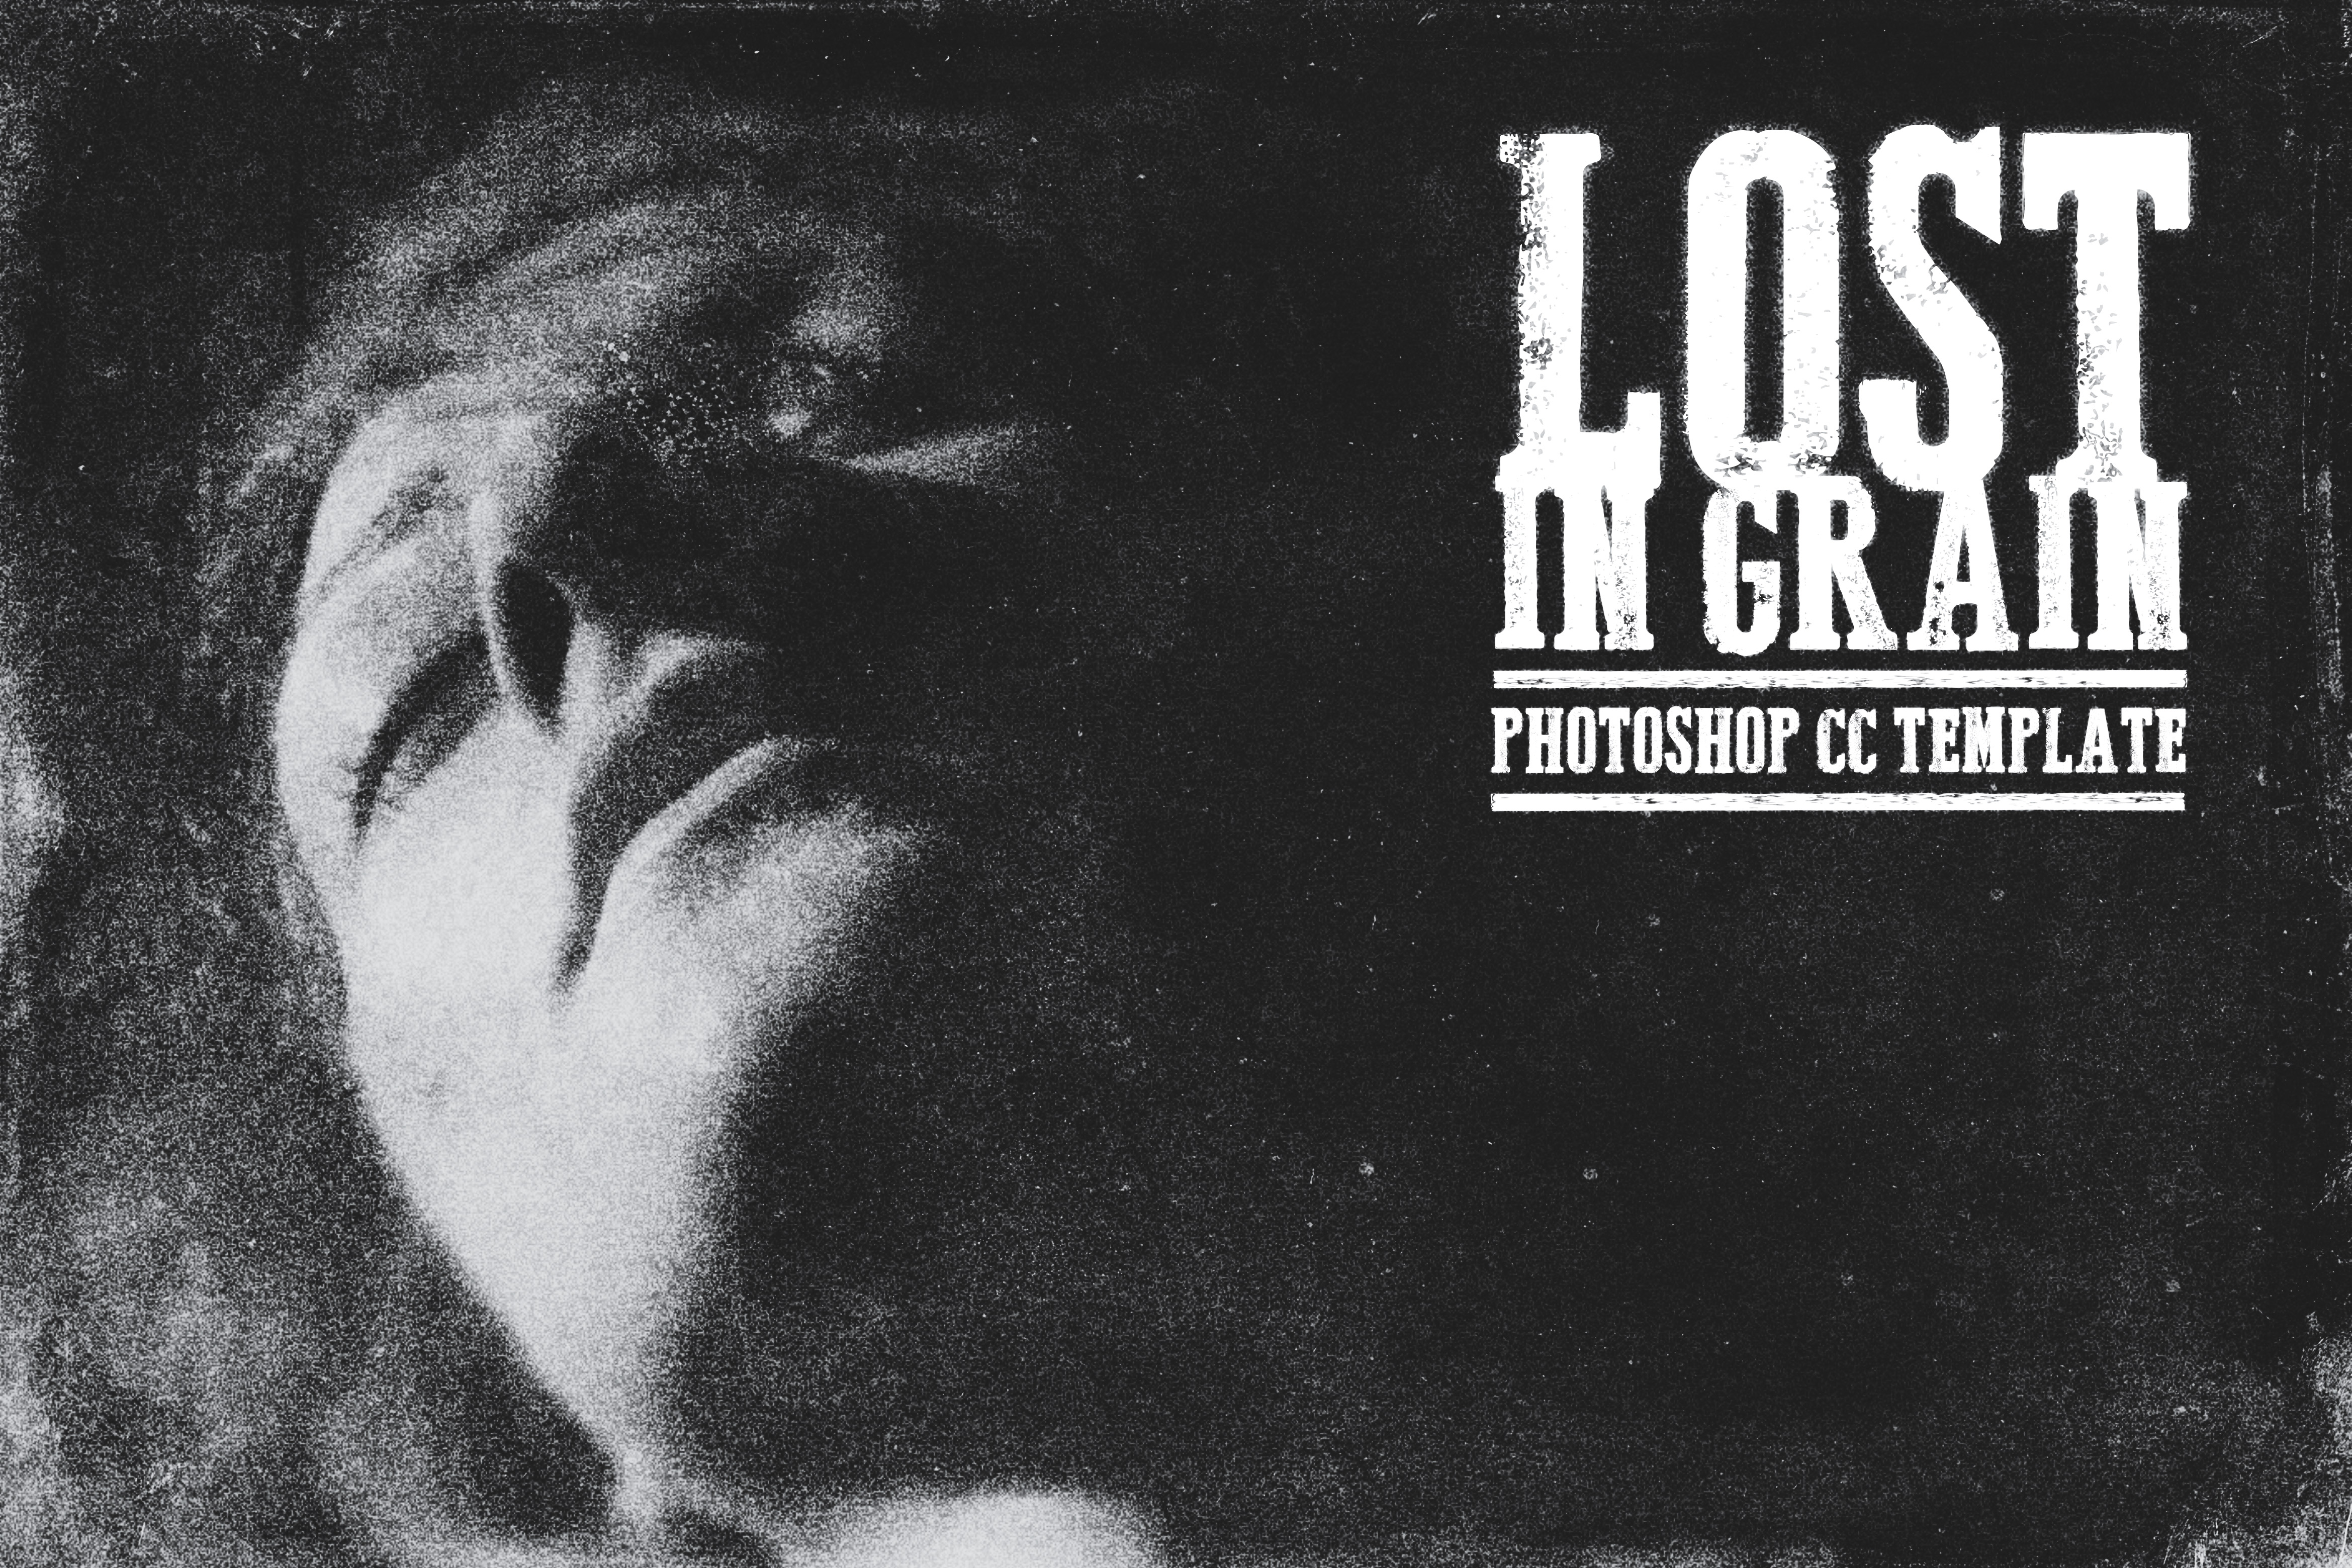 Lost in Grain - PSD Template by rawimage